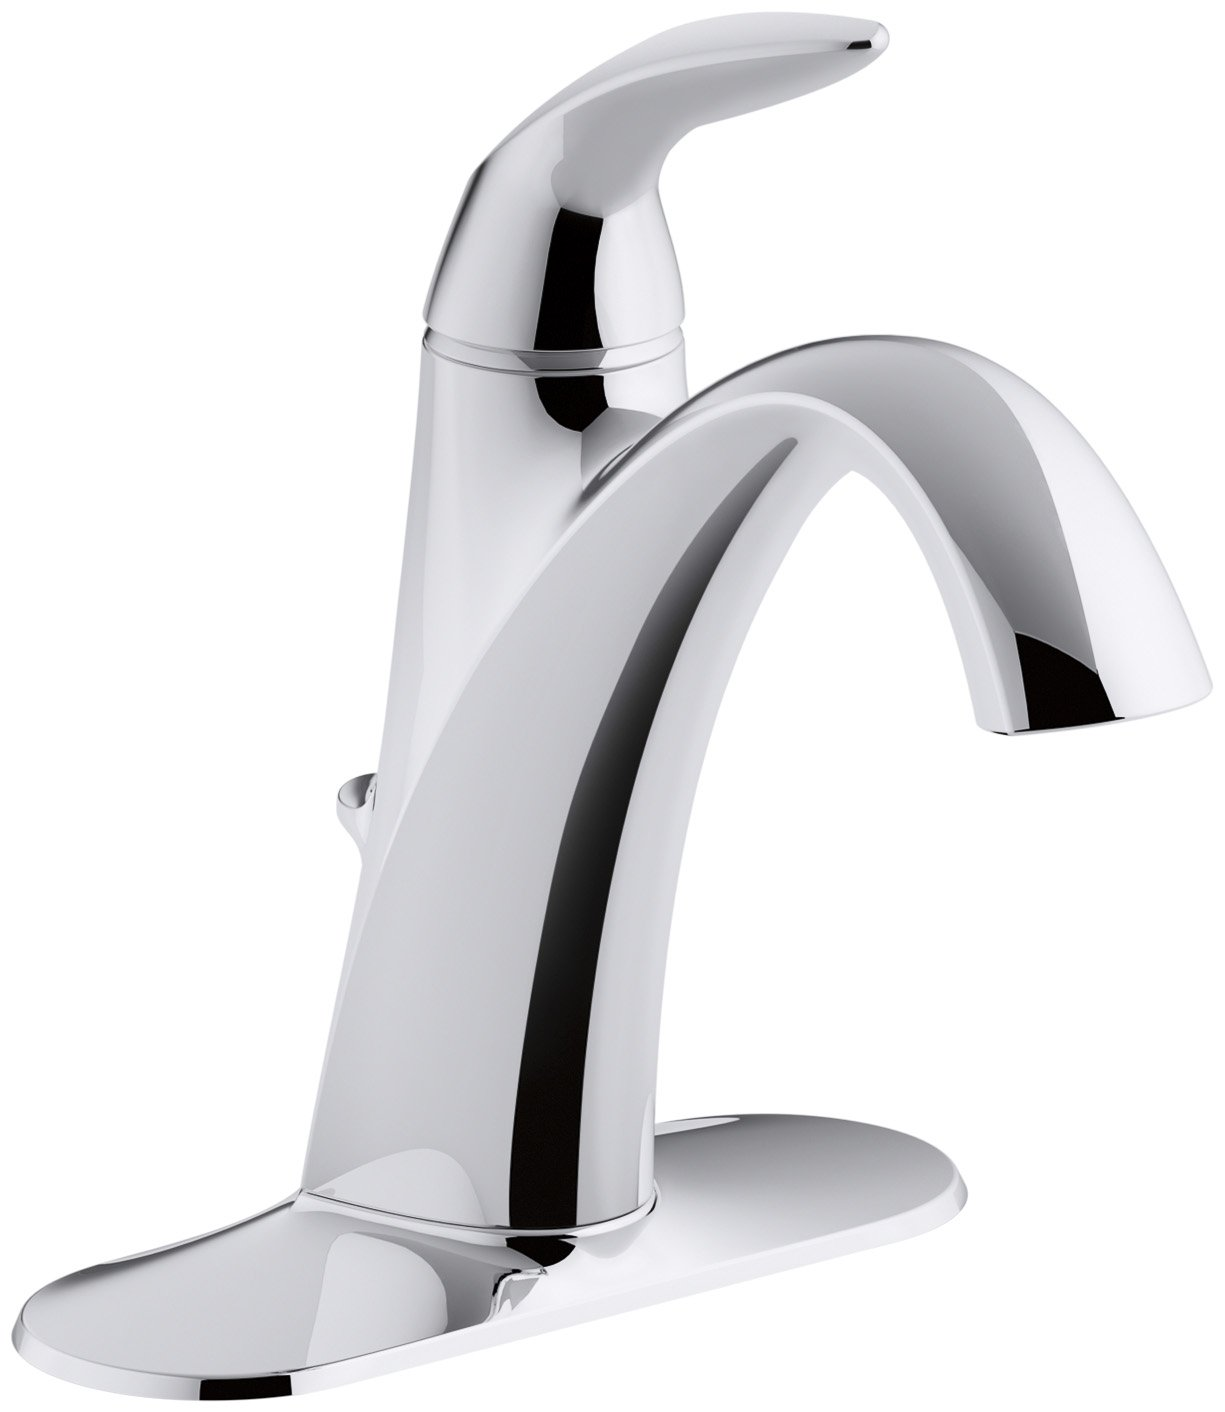 blcl cl chrome com in handle kraususa disk hole single faucet bathroom glass with kraus lever clear vessel kgw waterfall